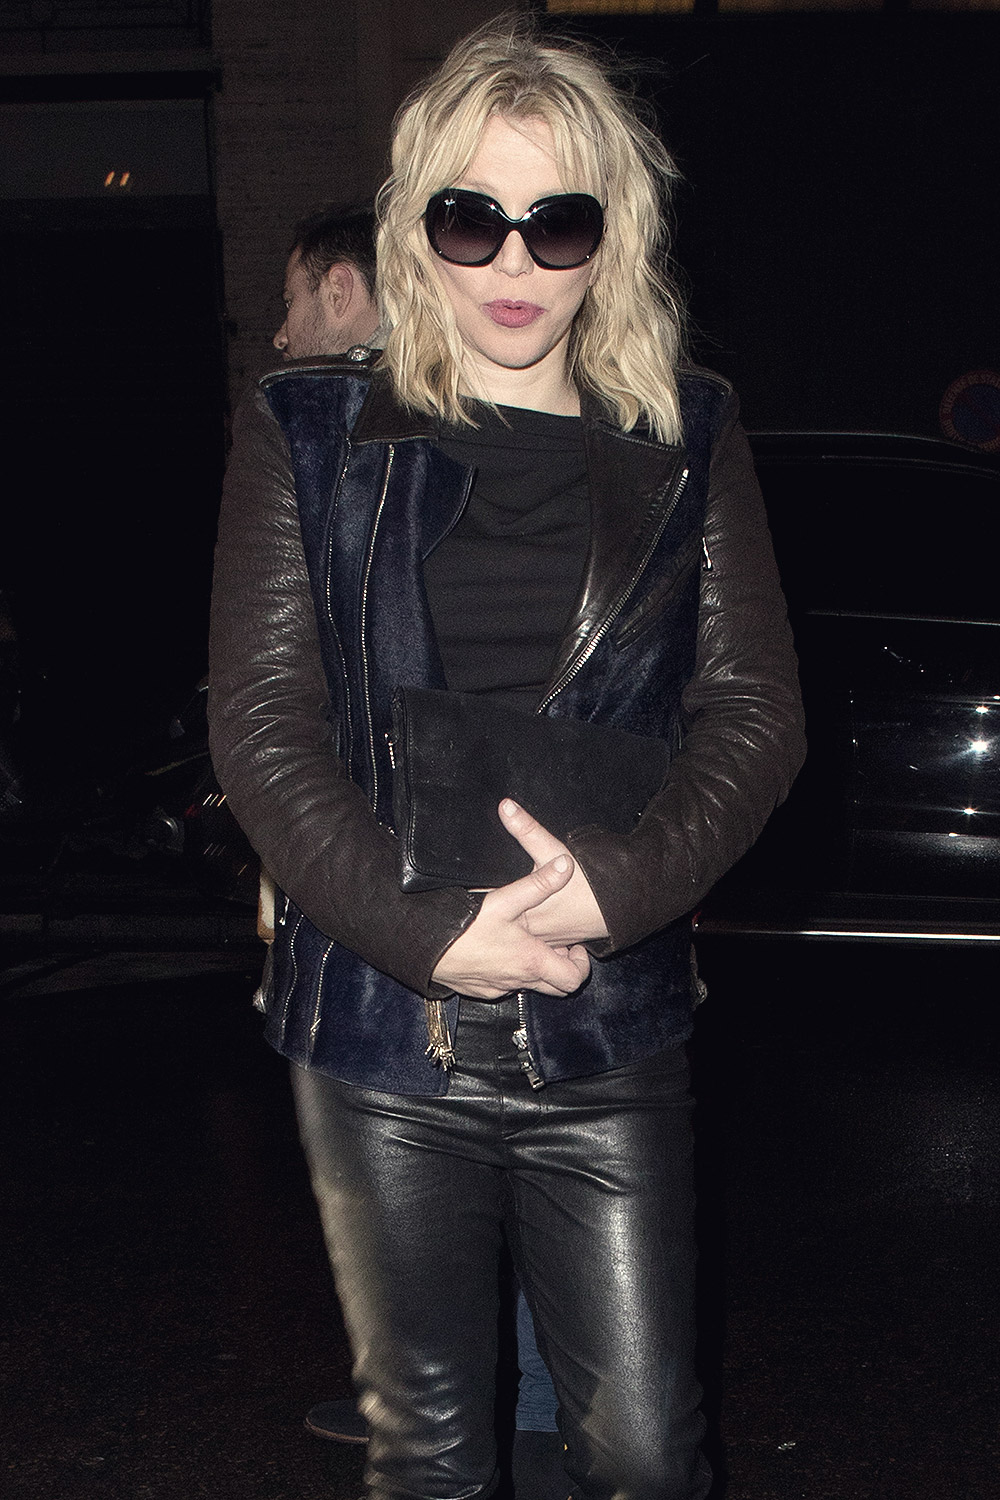 Courtney Love Attends Balmain S Party Leather Celebrities